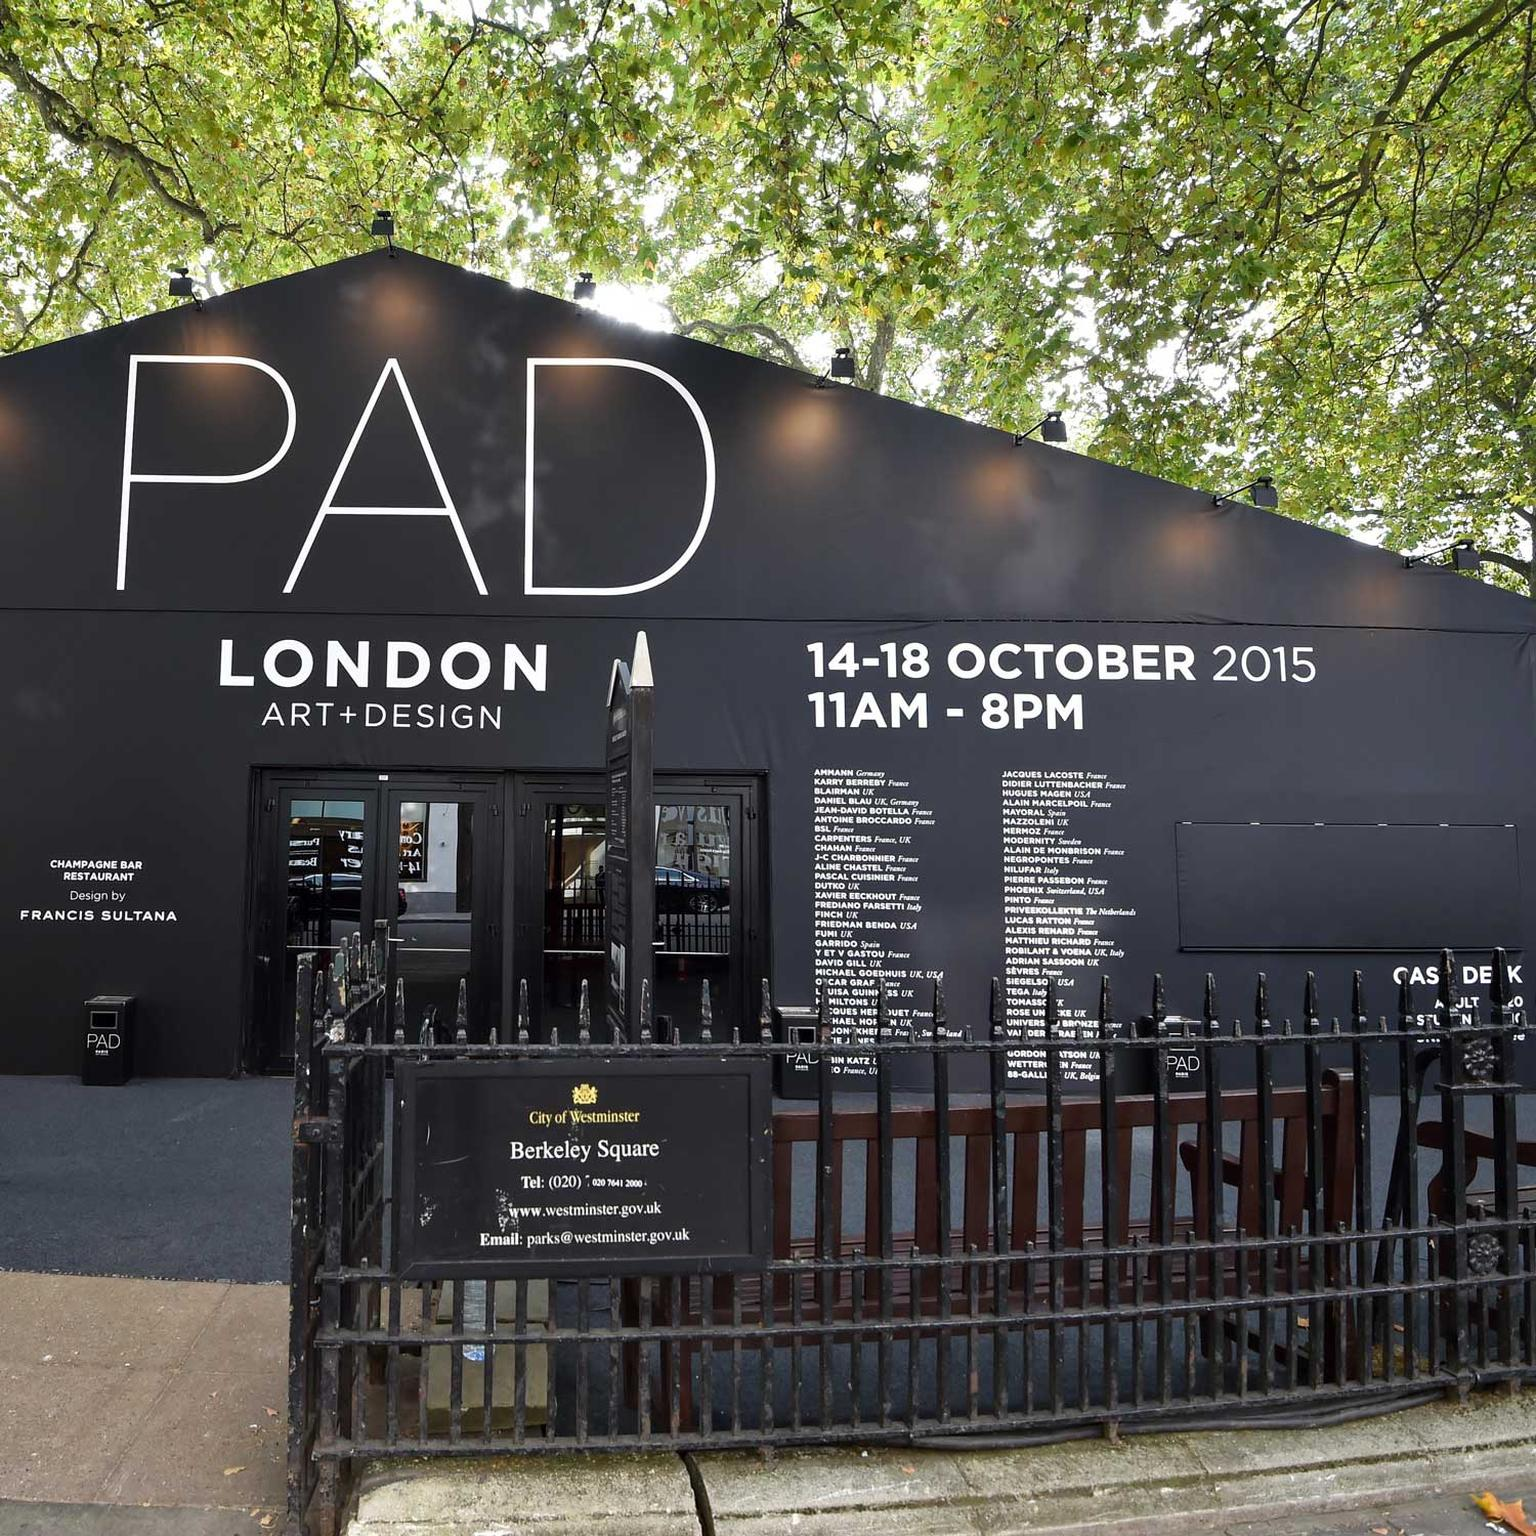 PAD London Berkeley Square 2015